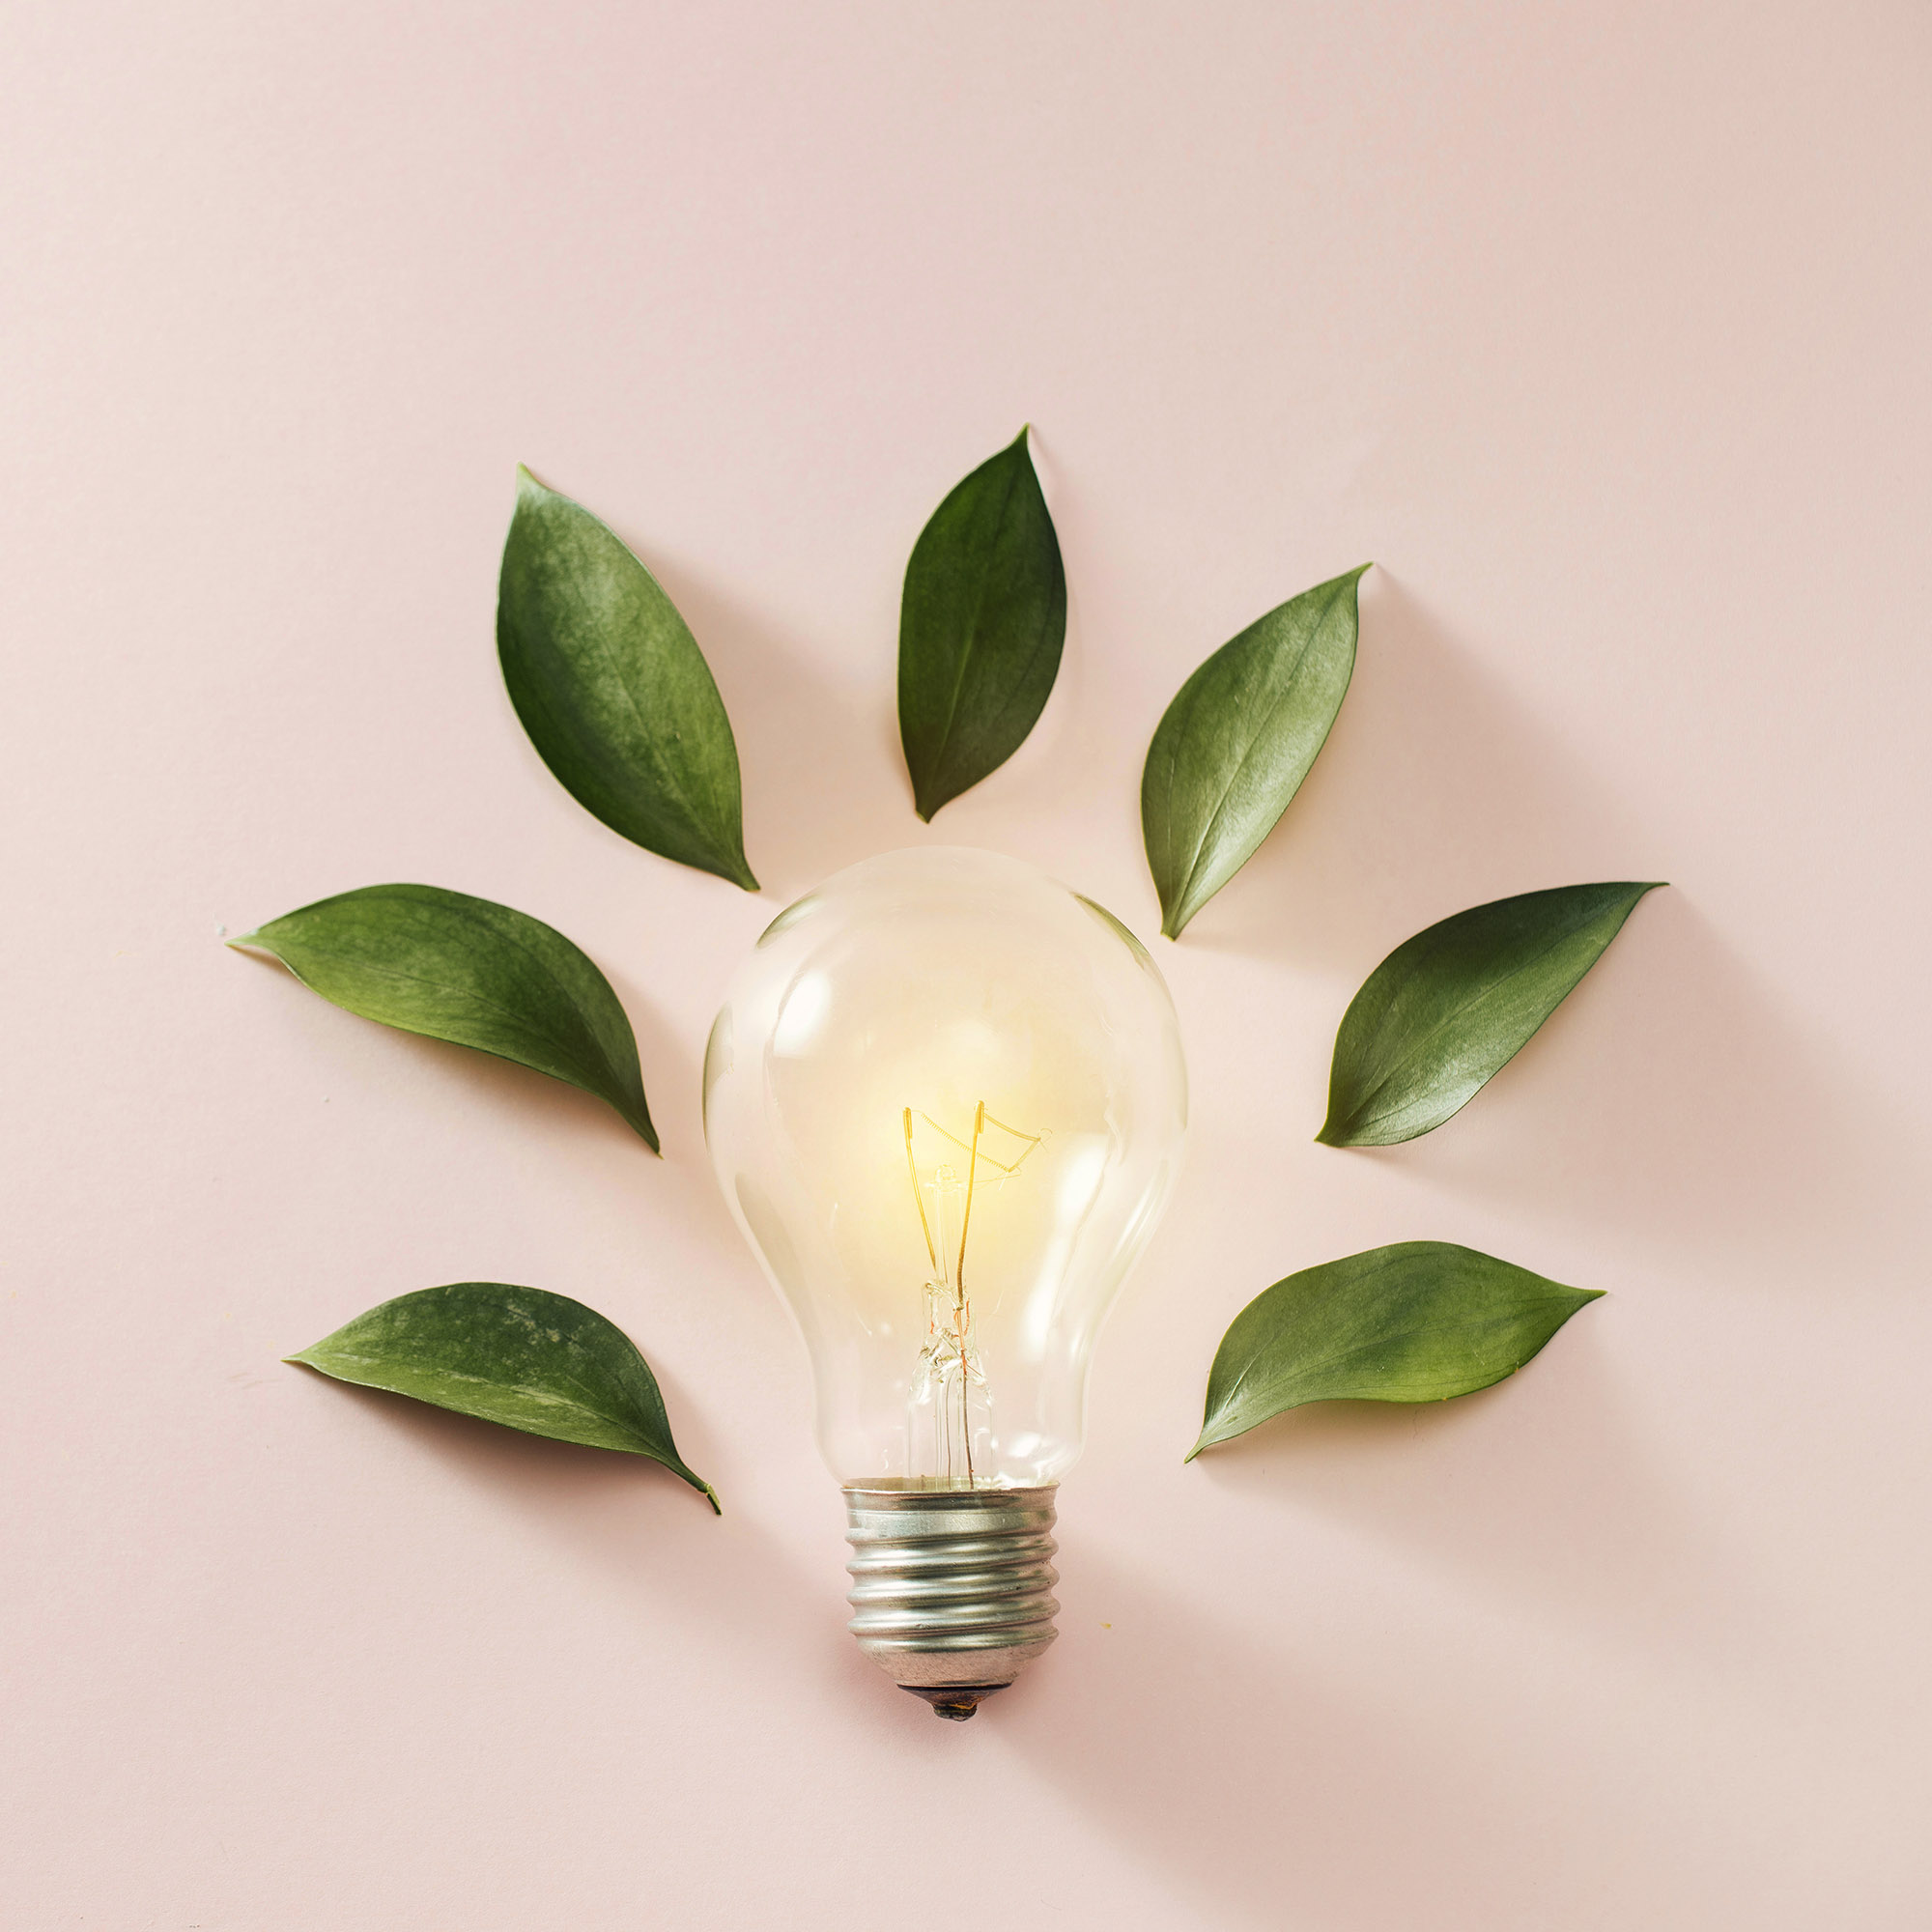 eco green energy concept bulb, lightbulb leaves on pink background